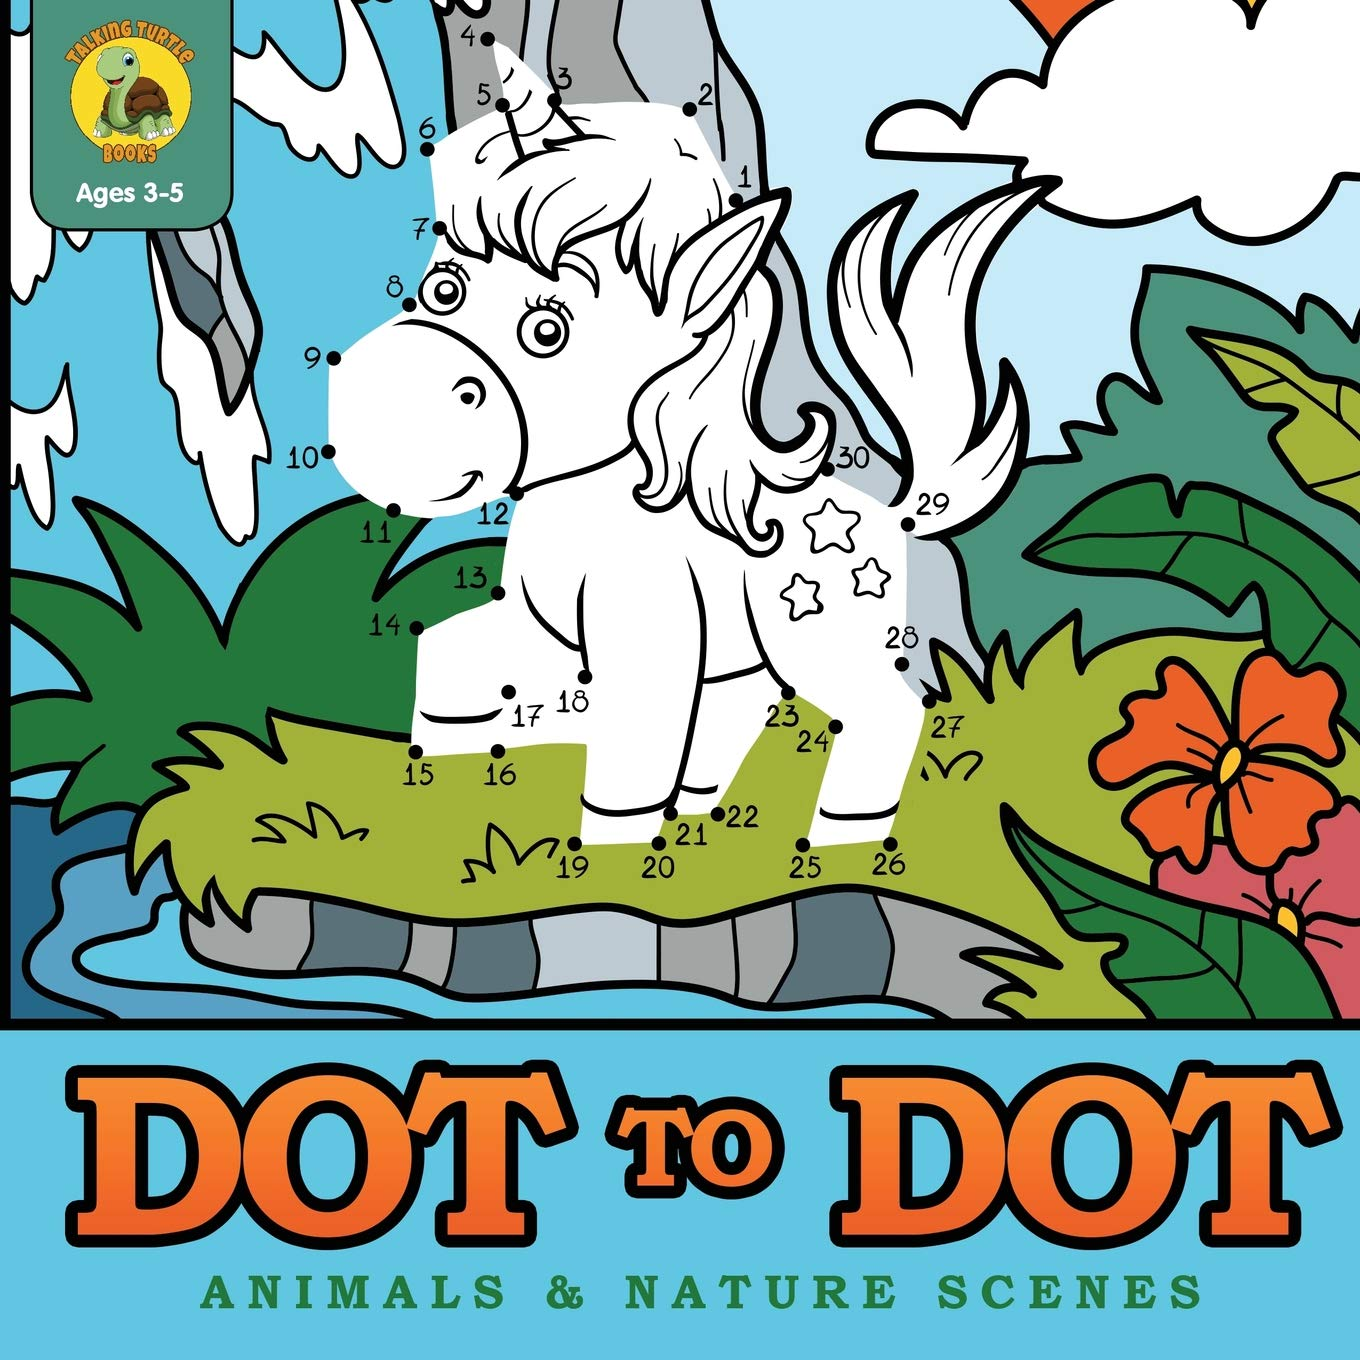 acdfa97a51f6da ... Connect the Dots Then Color In the Pictures with this Dot to Dot  Coloring Book! (Ages 3-8) (Learn   Play Kids Activity Books) Paperback – December  15 ...